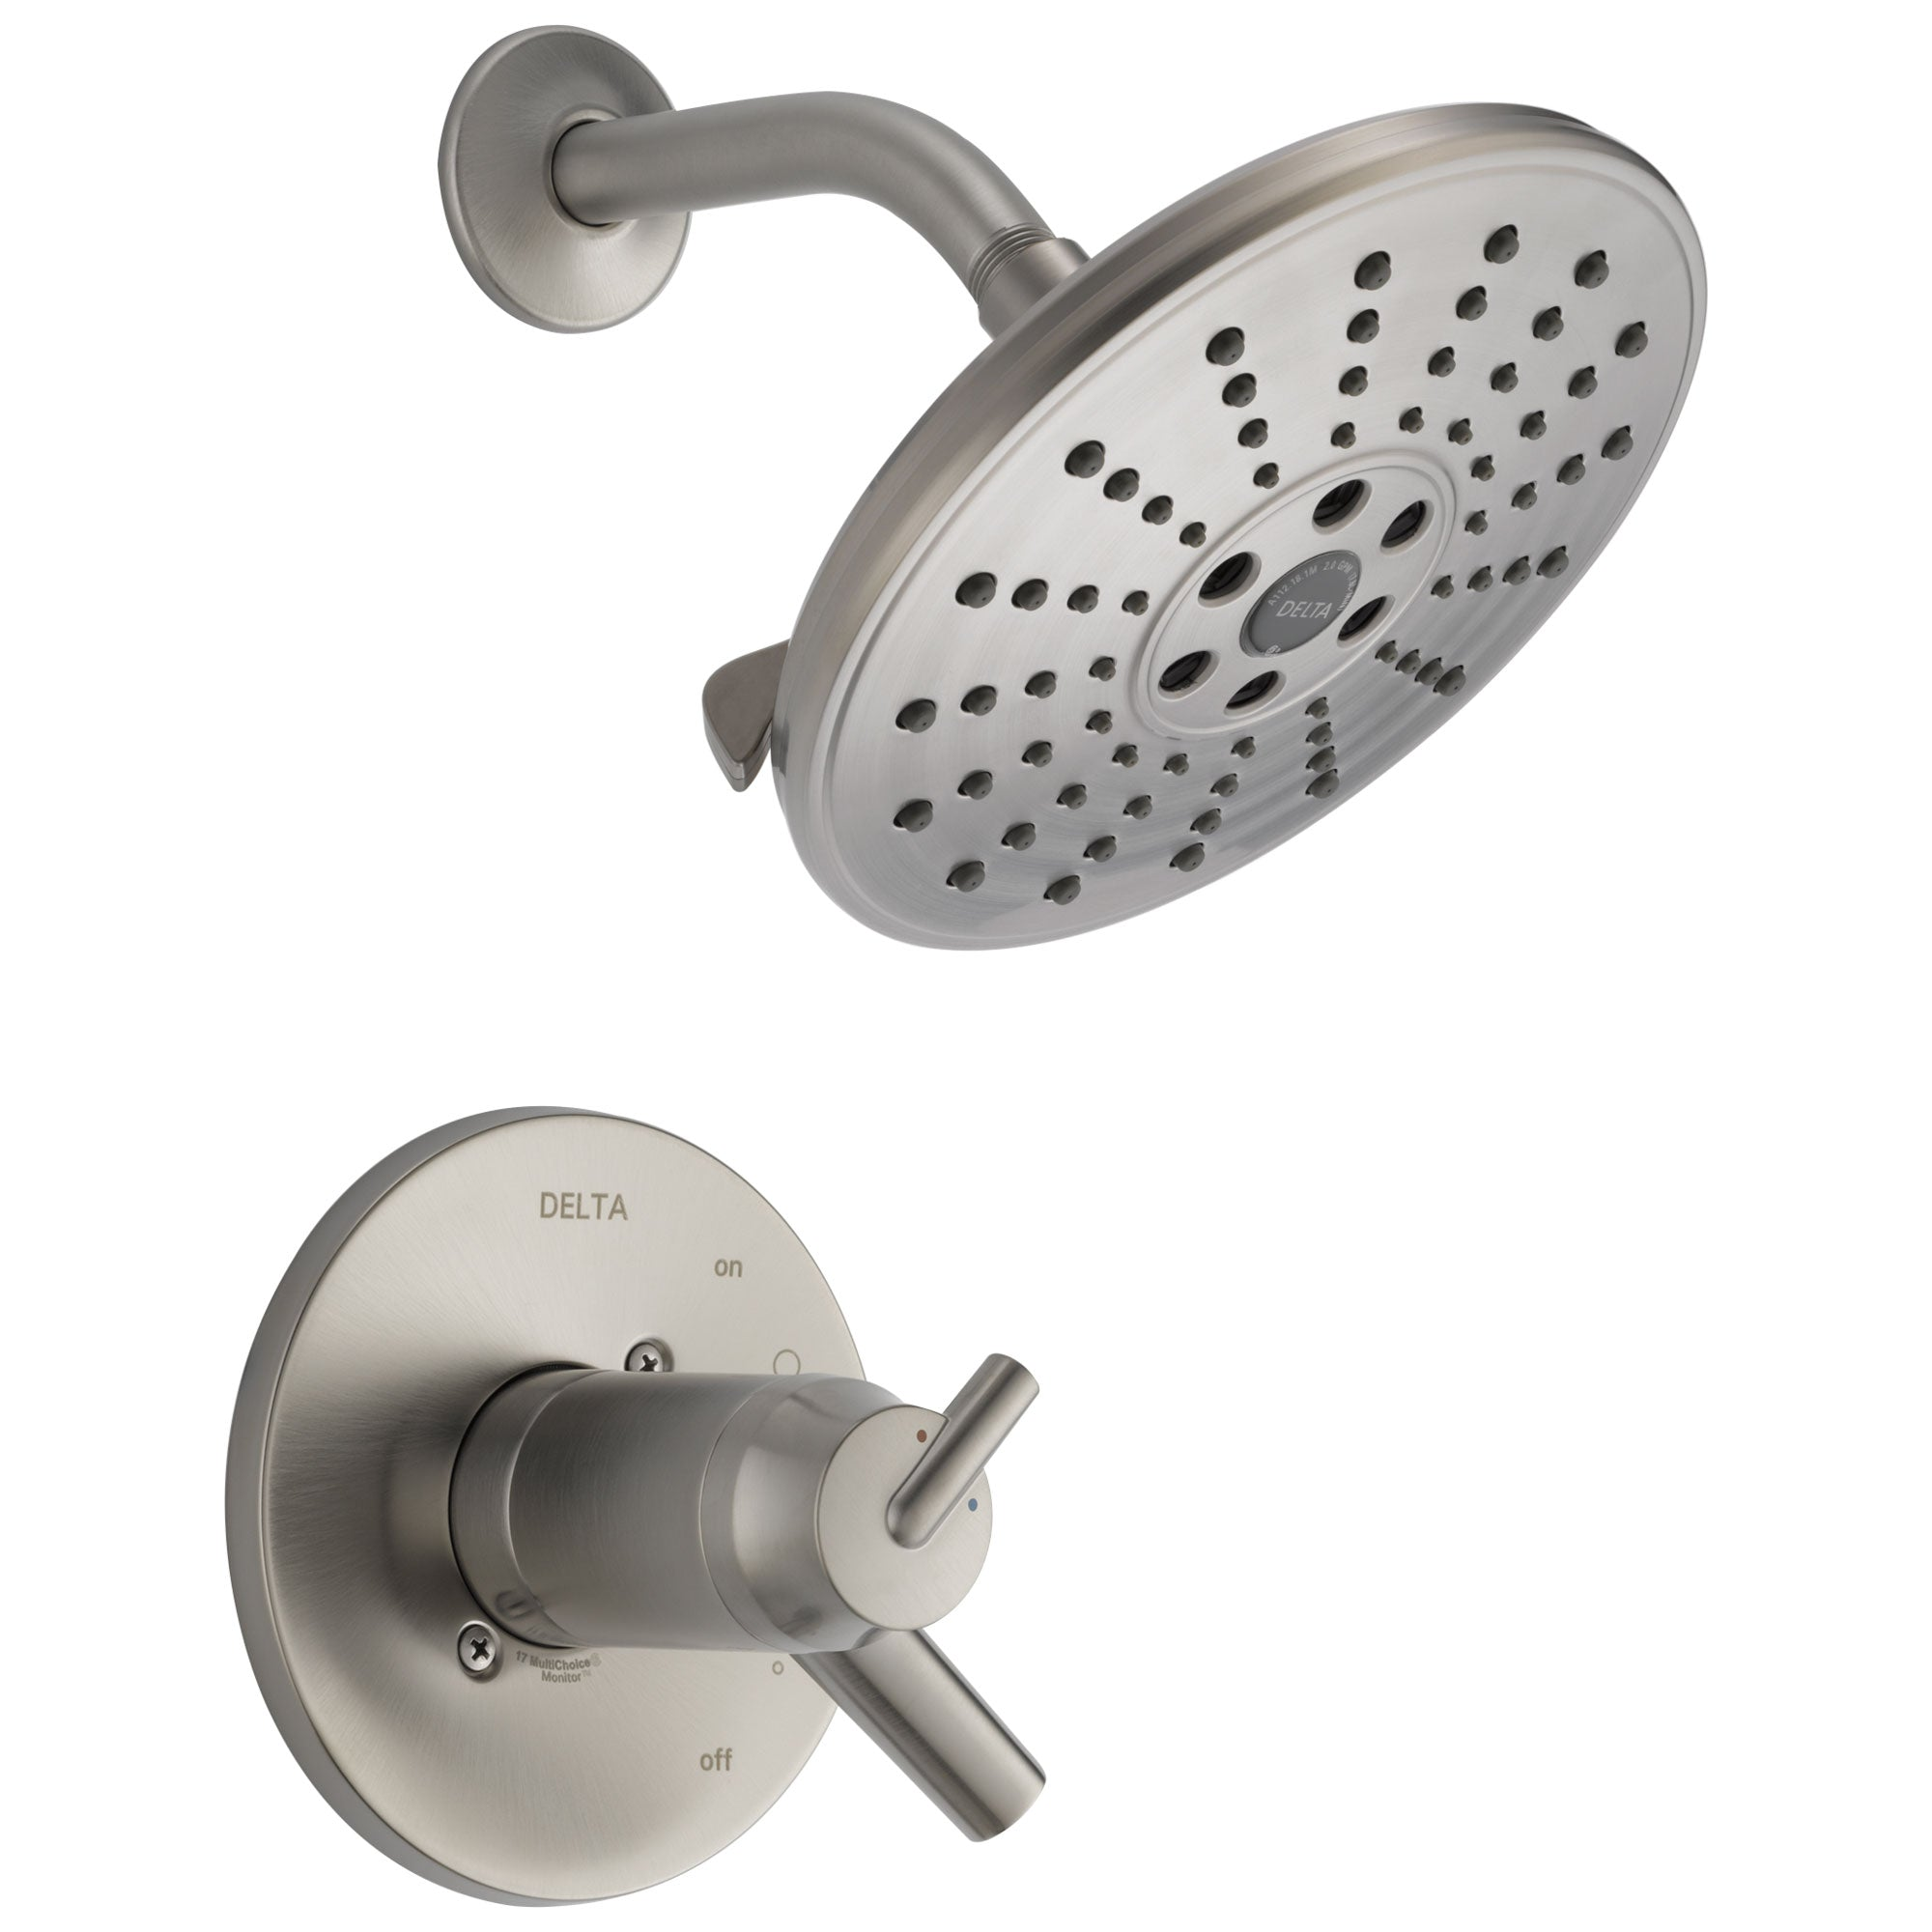 Delta Trinsic Collection Stainless Steel Finish Thermostatic Temperature / Pressure Control Shower Only Faucet Includes Rough-in Valve with Stops D2248V